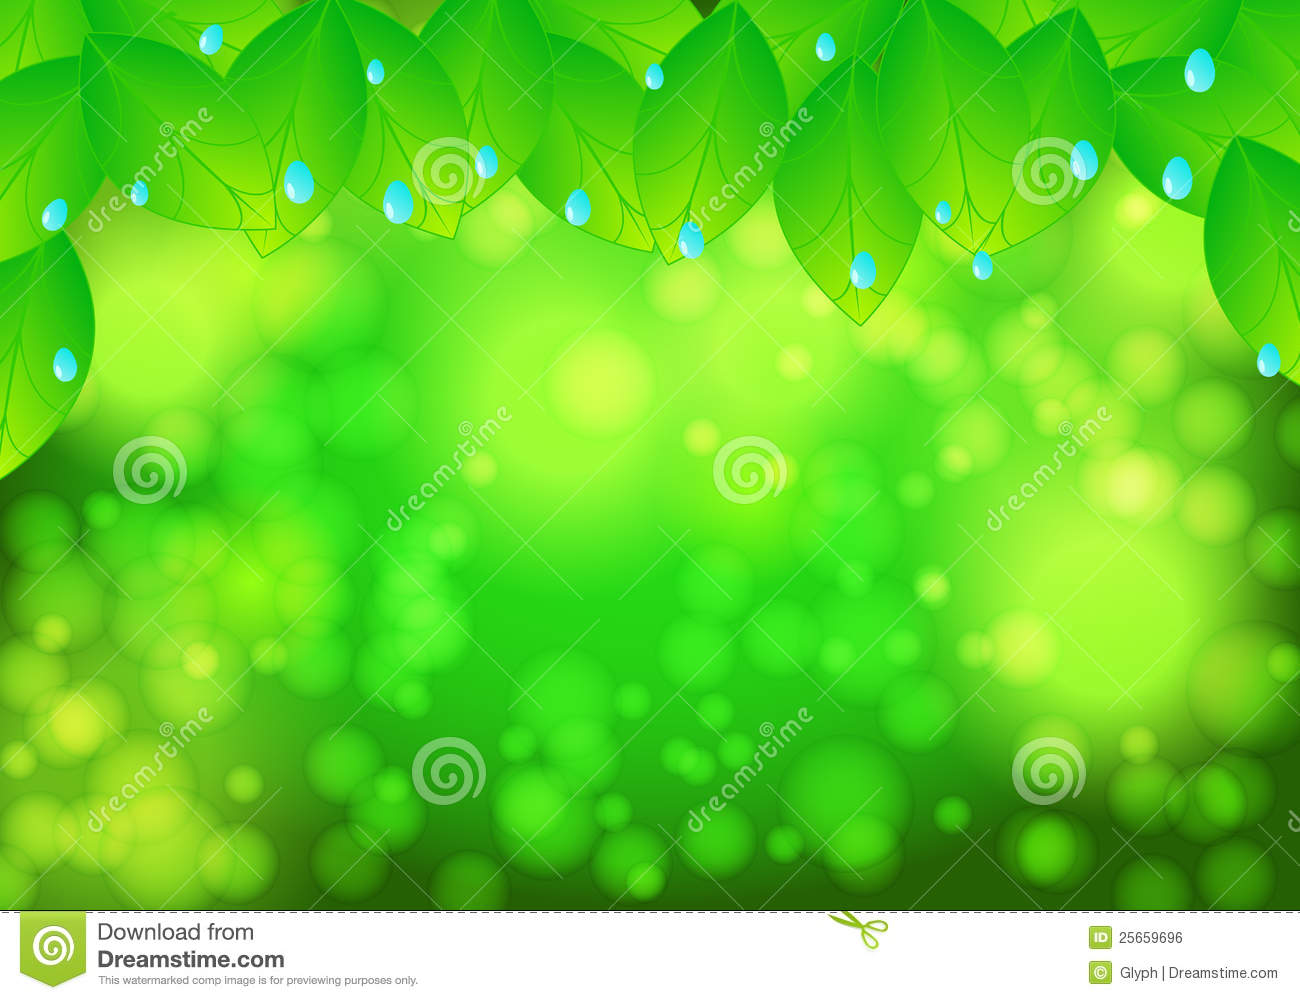 beautiful green nature background stock vector - image: 25659696, Powerpoint templates